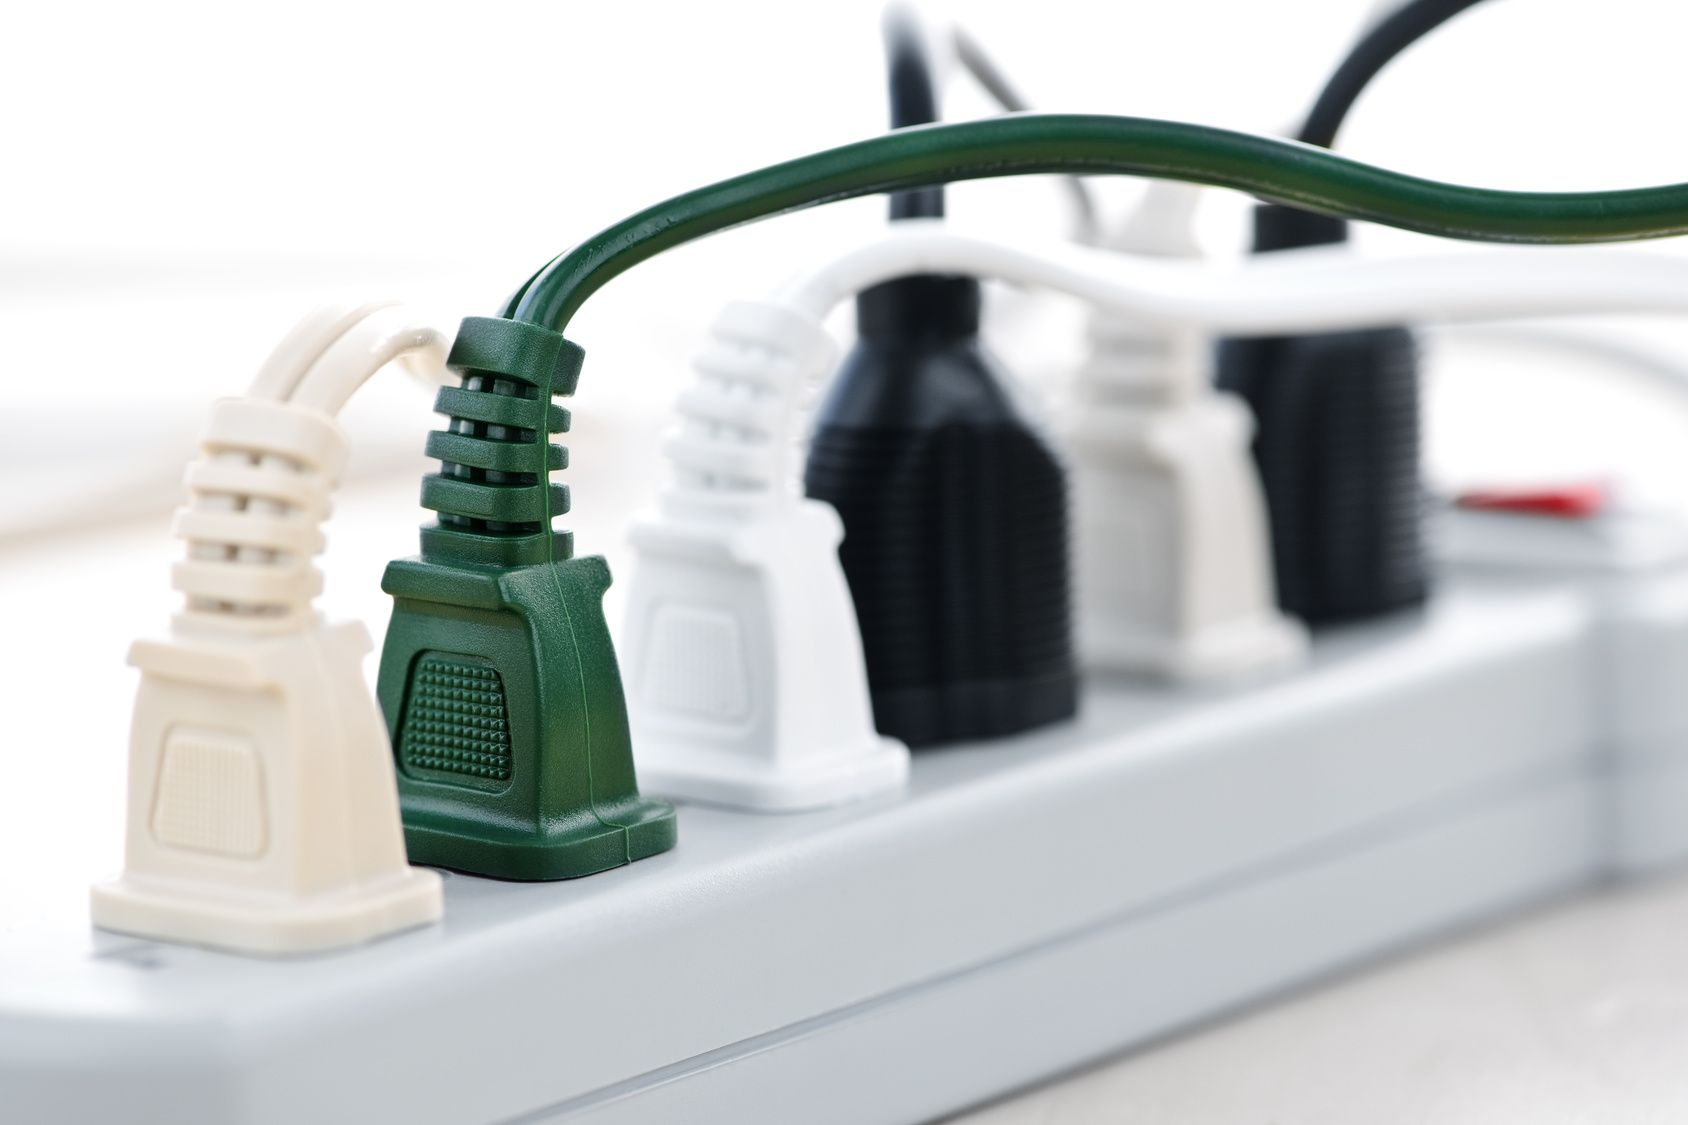 A power strip with plugs in